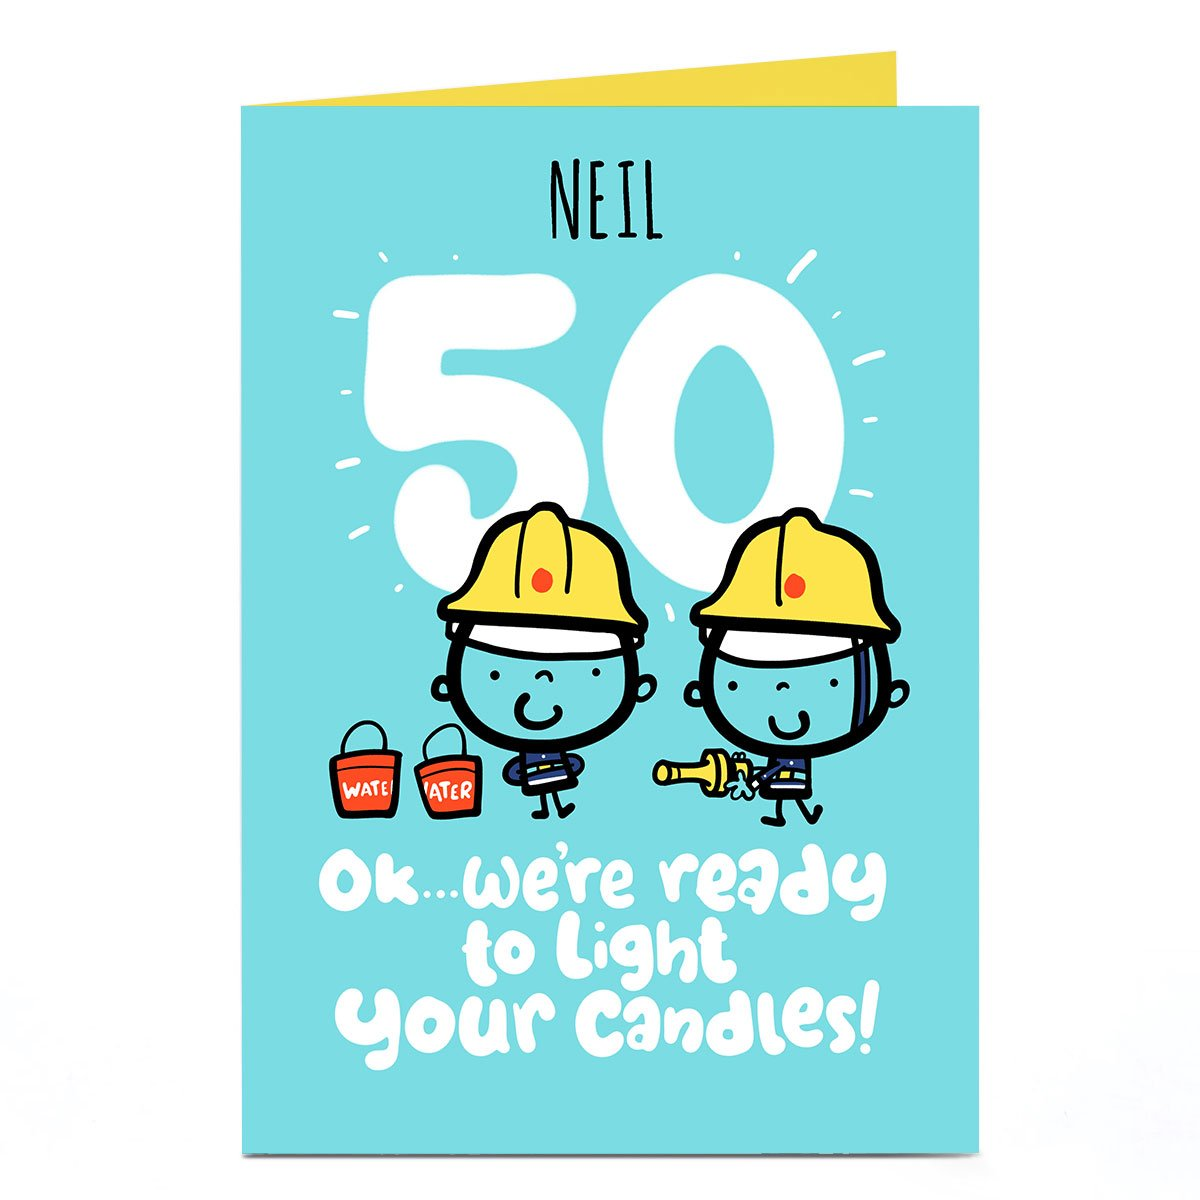 Personalised Fruitloops 50th Birthday Card - Light Your Candles!